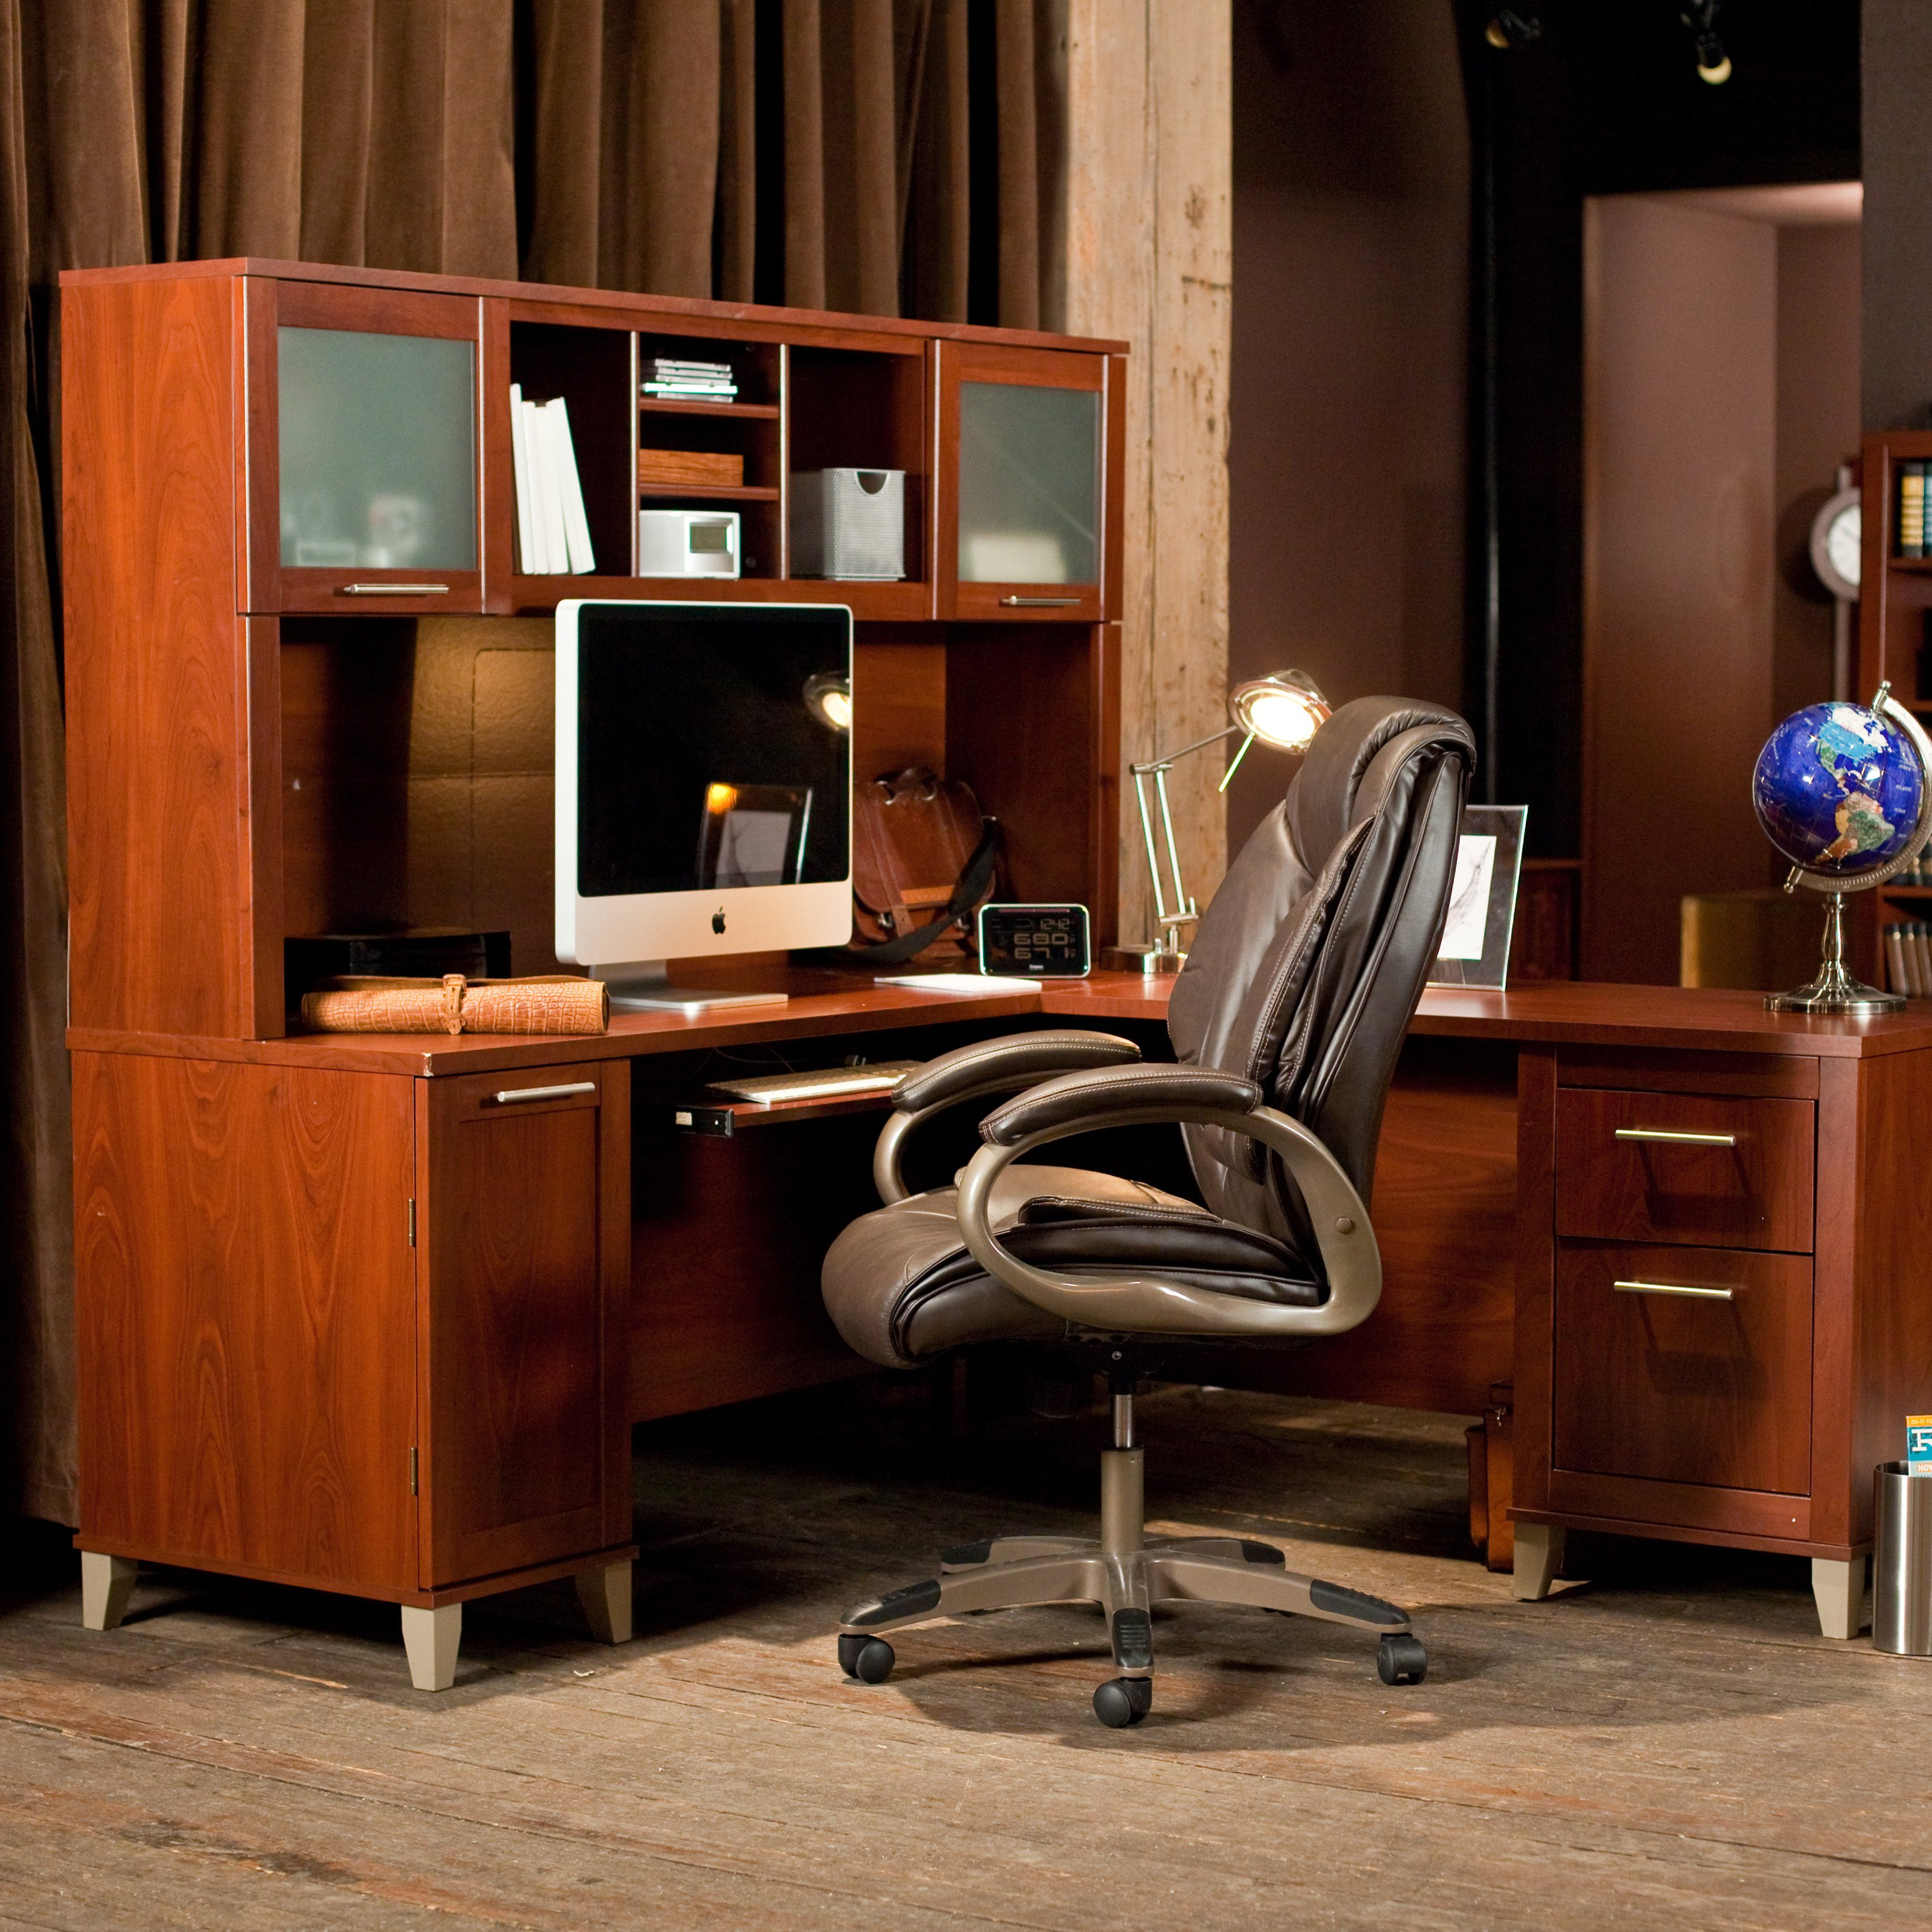 Bush Somerset Cherry 71 in. Computer Desk with Options